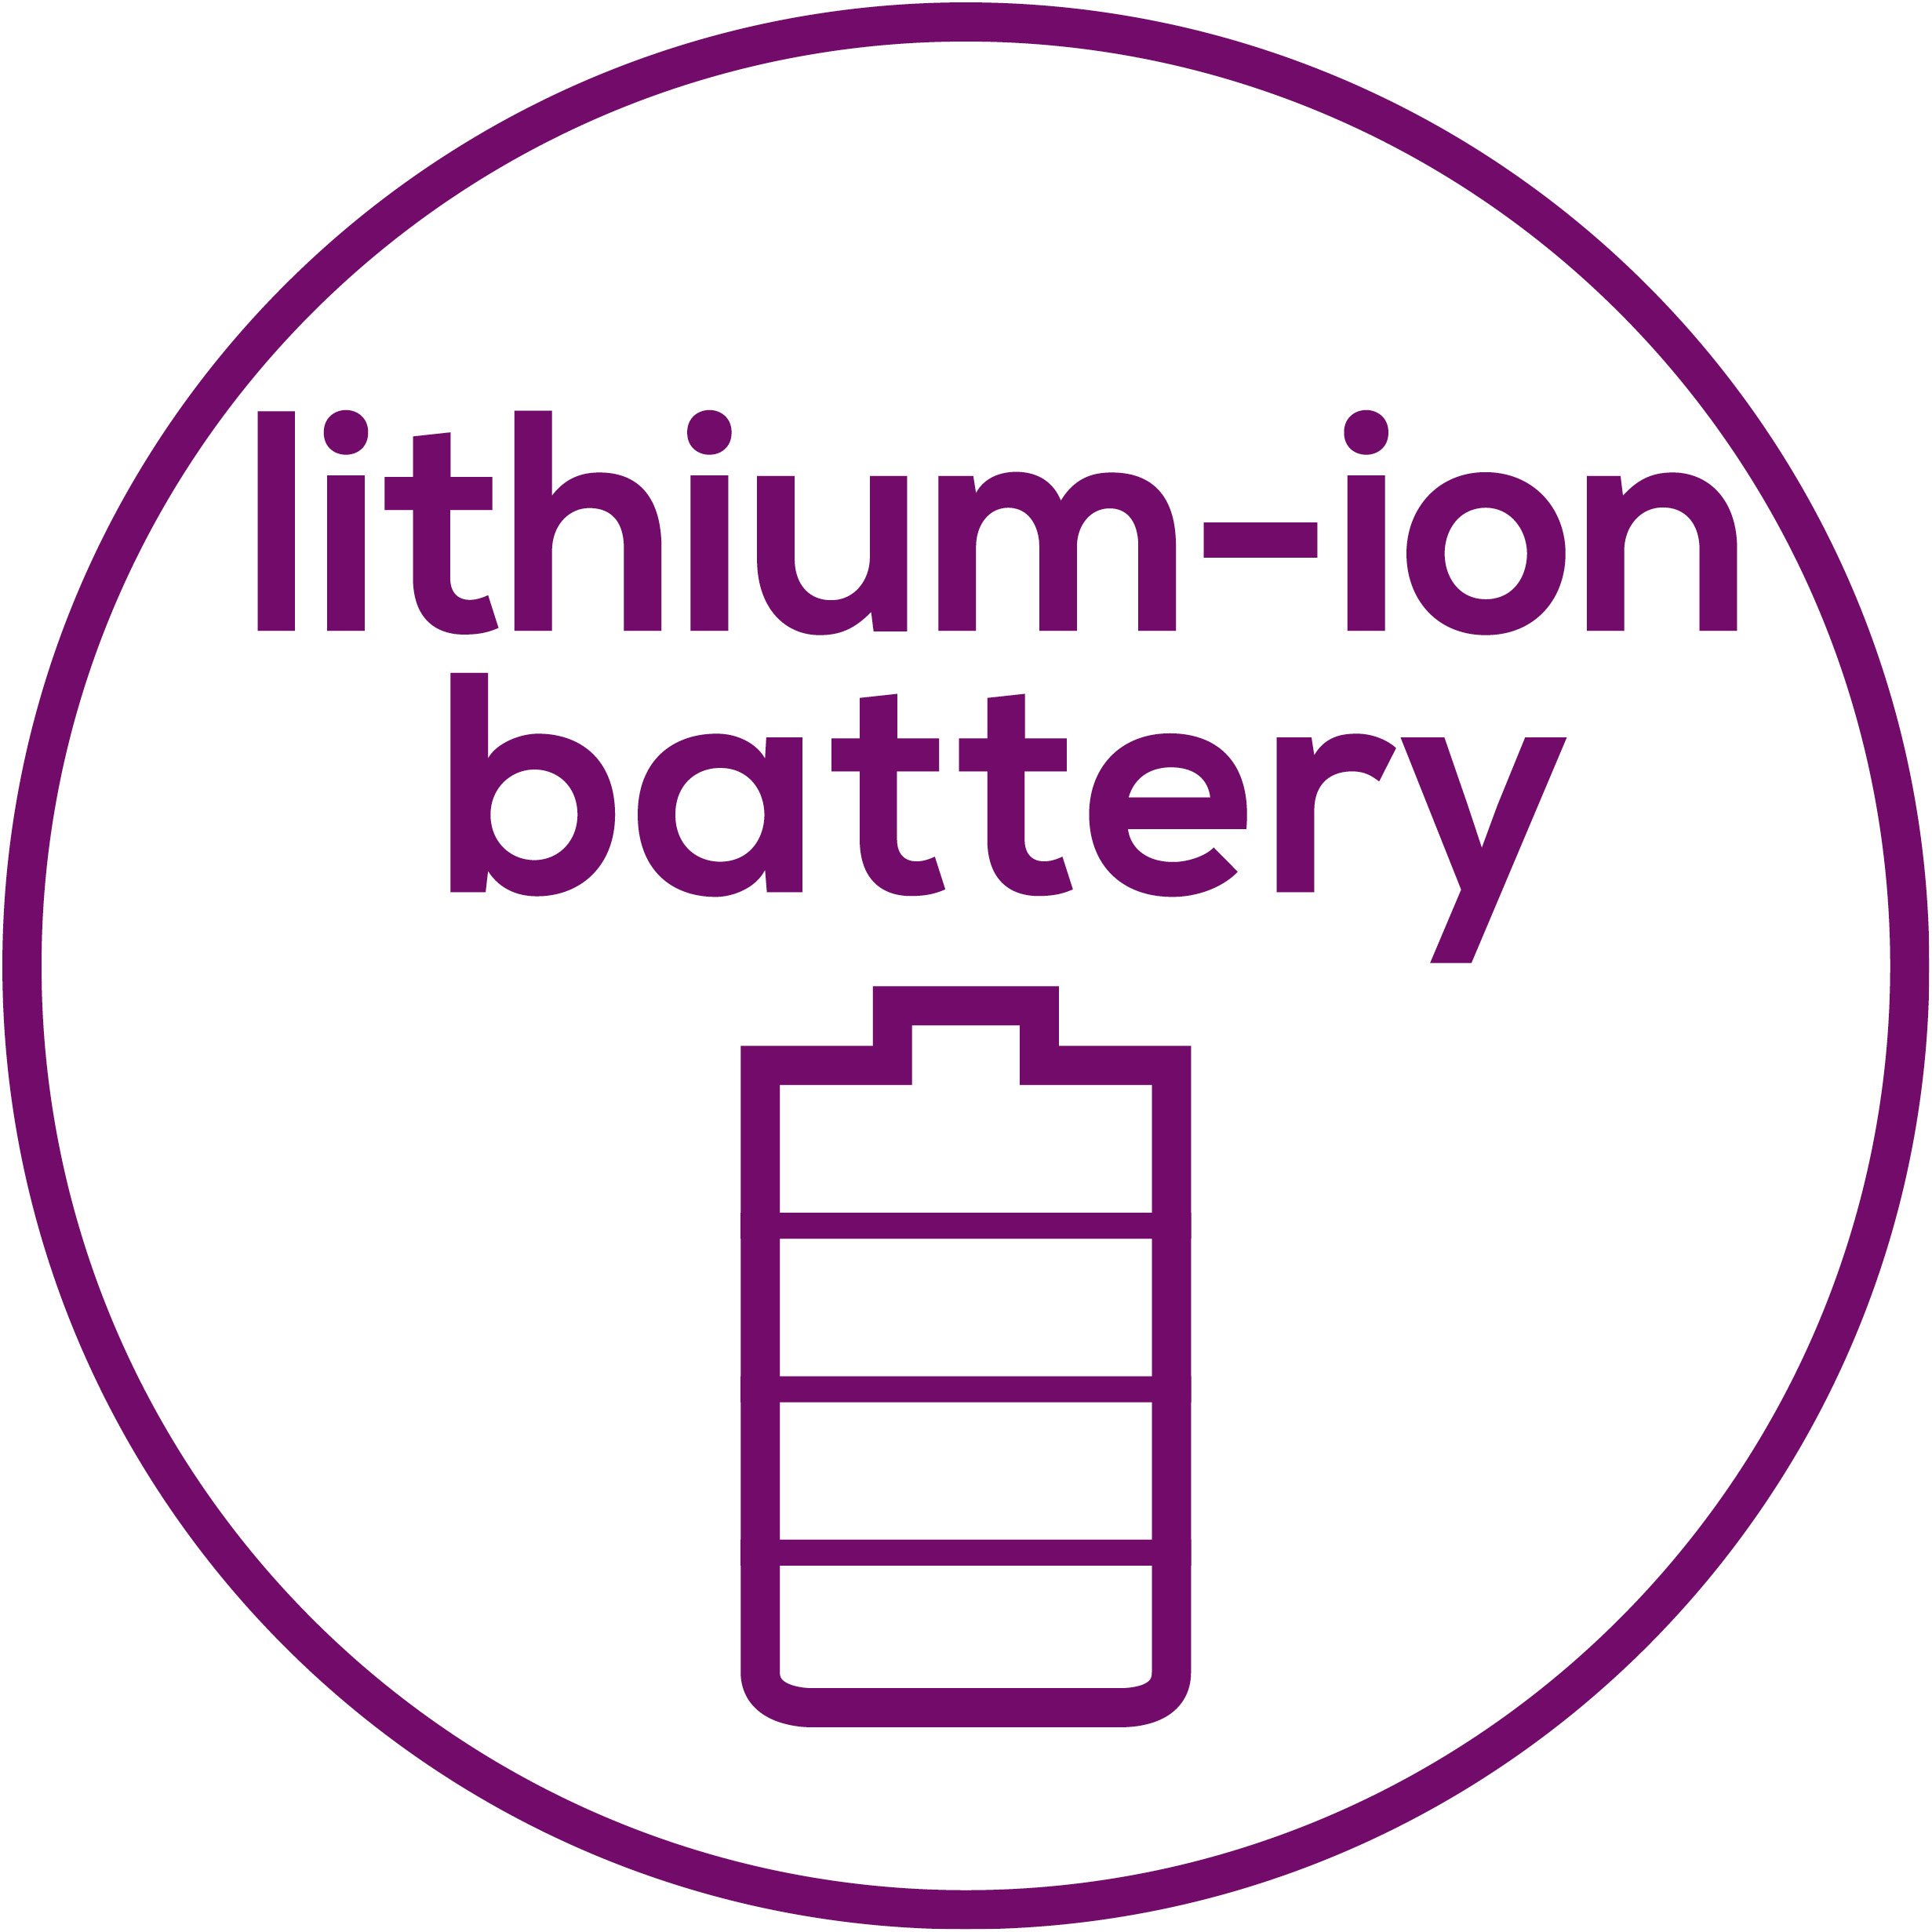 Batterie lithium-ion Batterie lithium-ion performante